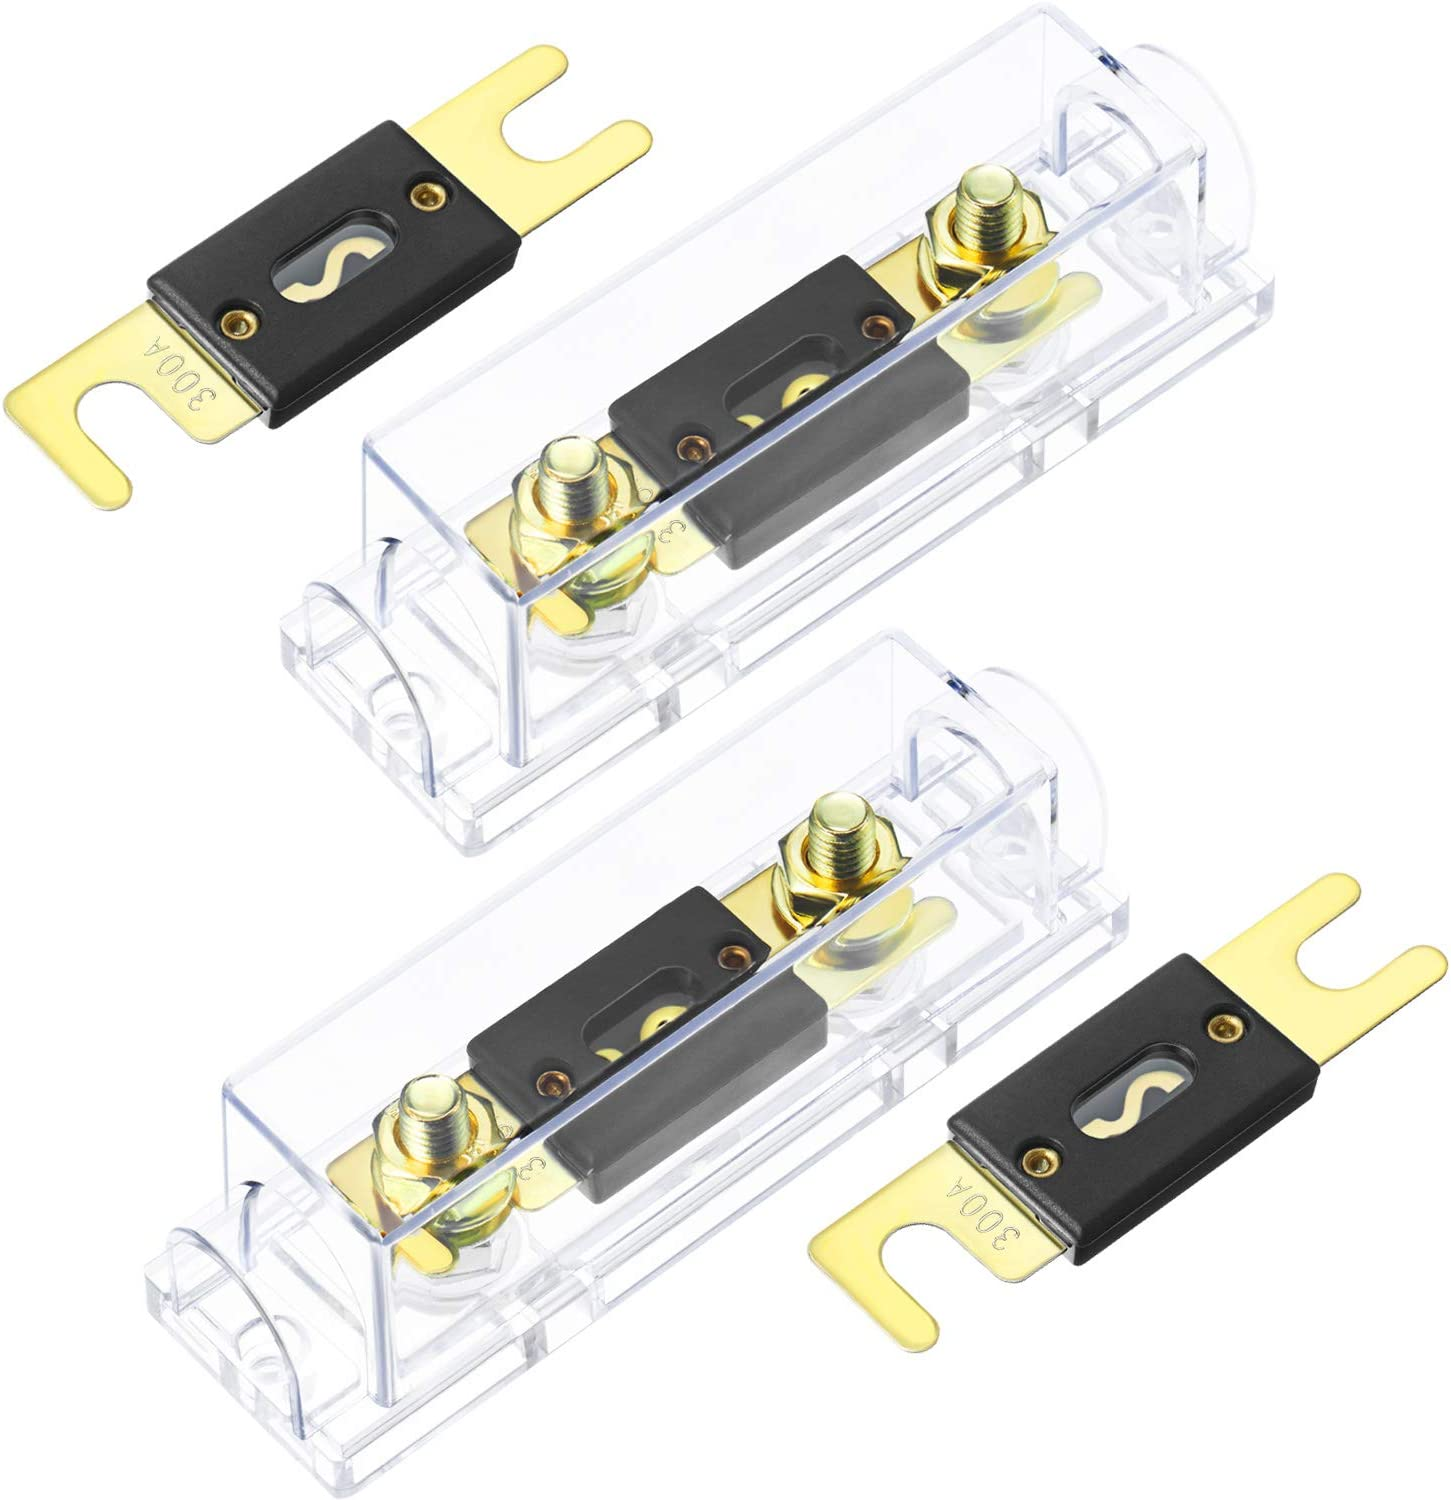 25% OFF 2 Pieces Car Audio Video ANL Fuse Holder Sets and Spare Excellent